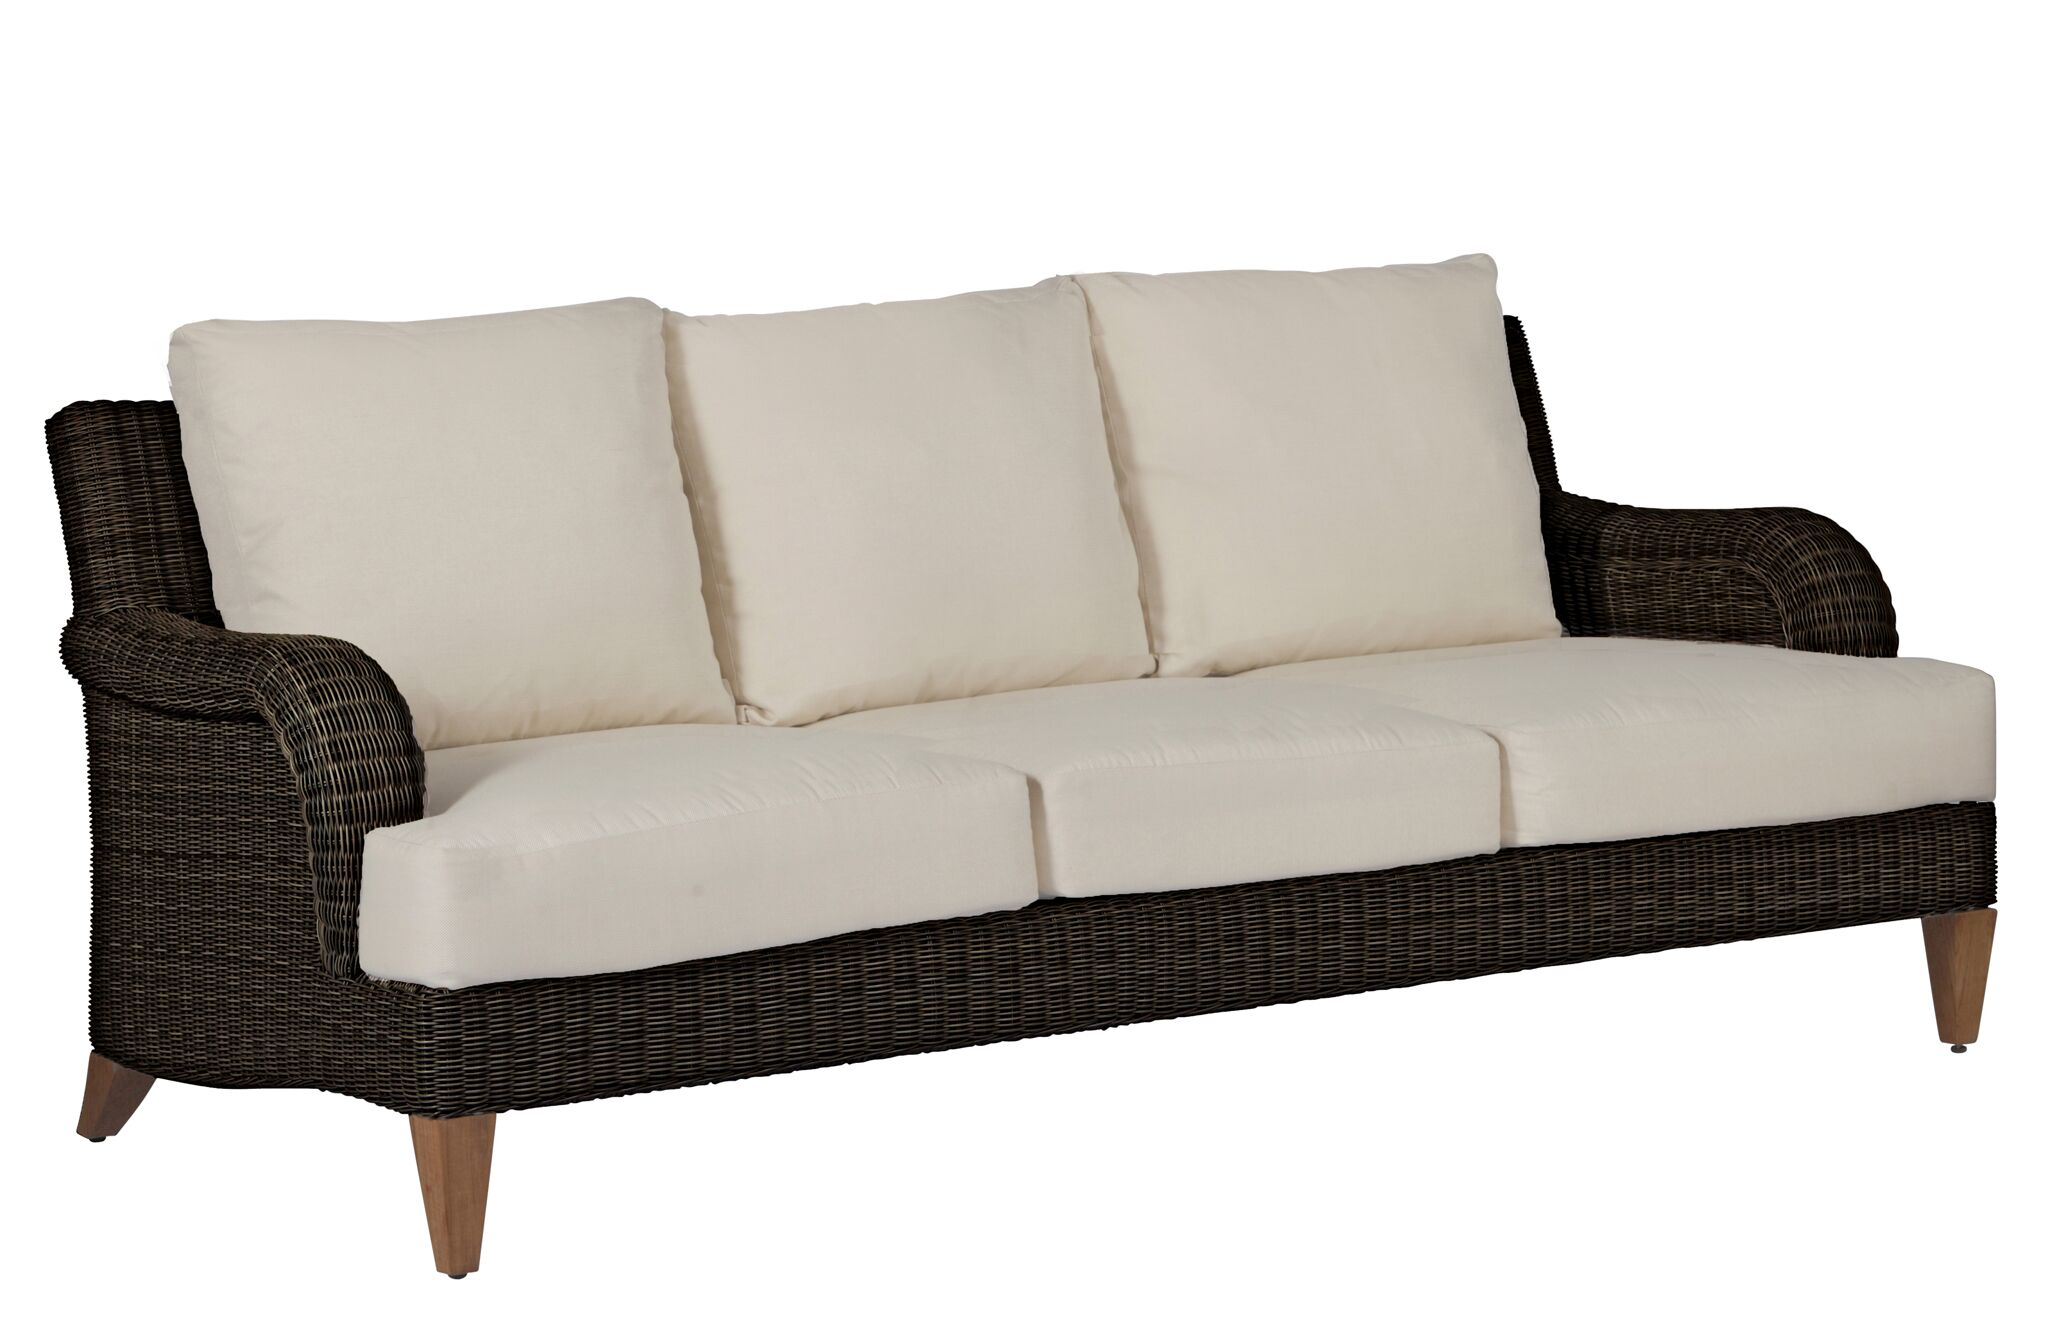 London Patio Sofa with Cushions